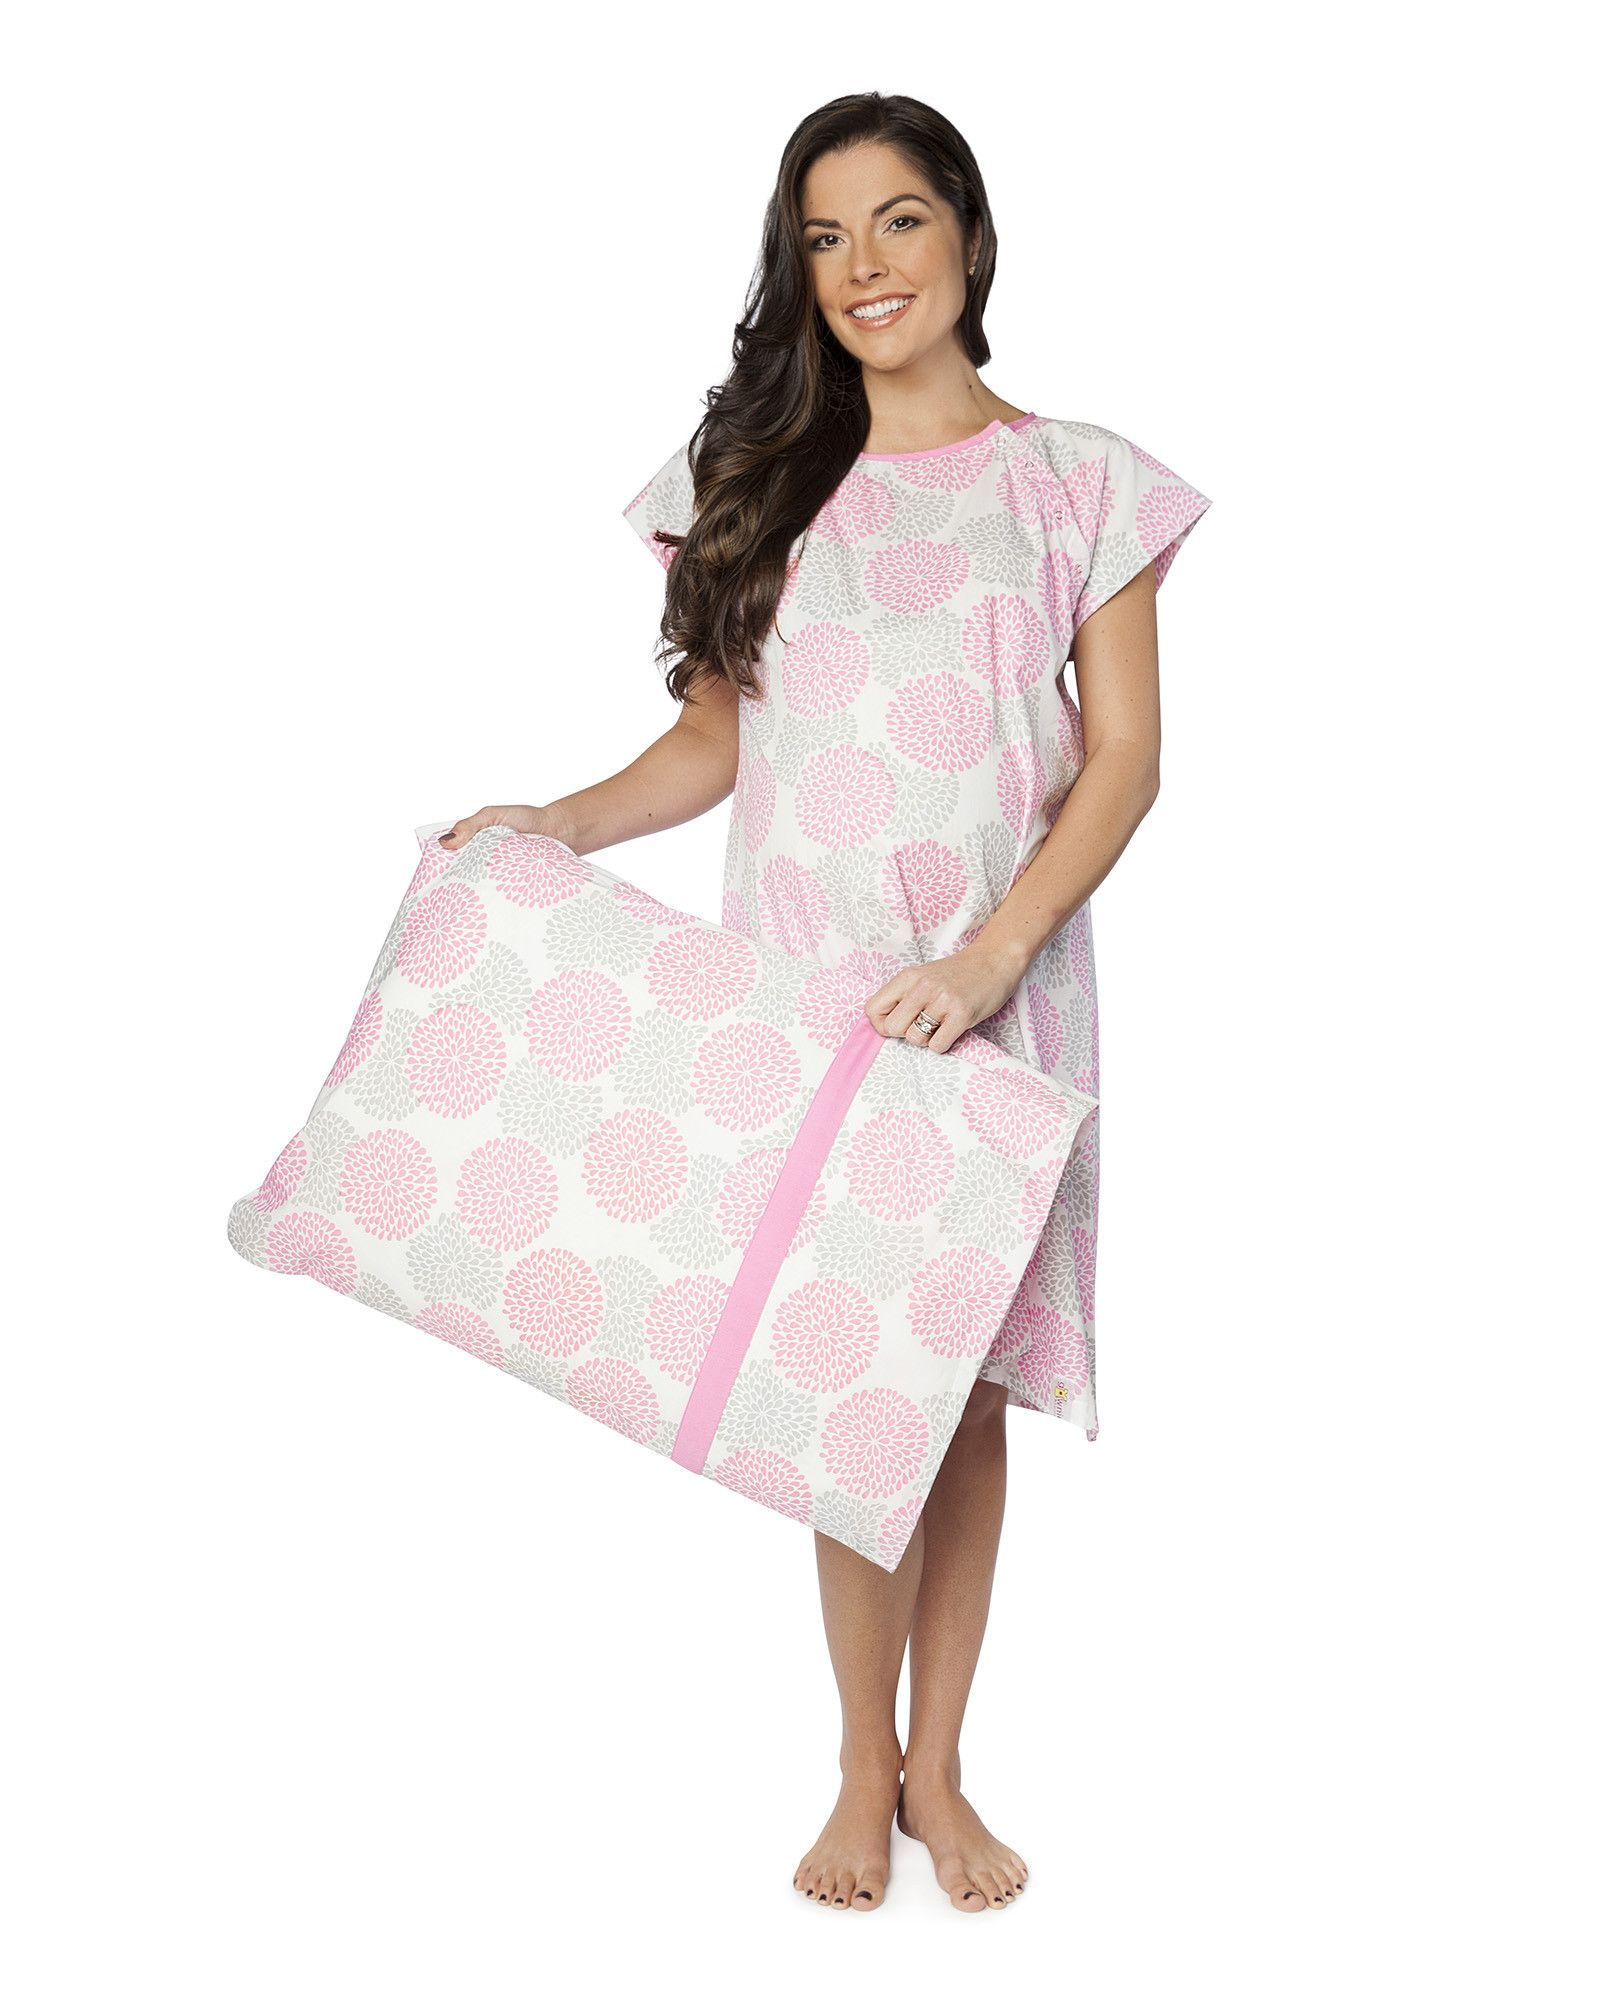 Lilly Maternity Labor and Delivery Hospital Gown Gownie & Matching ...